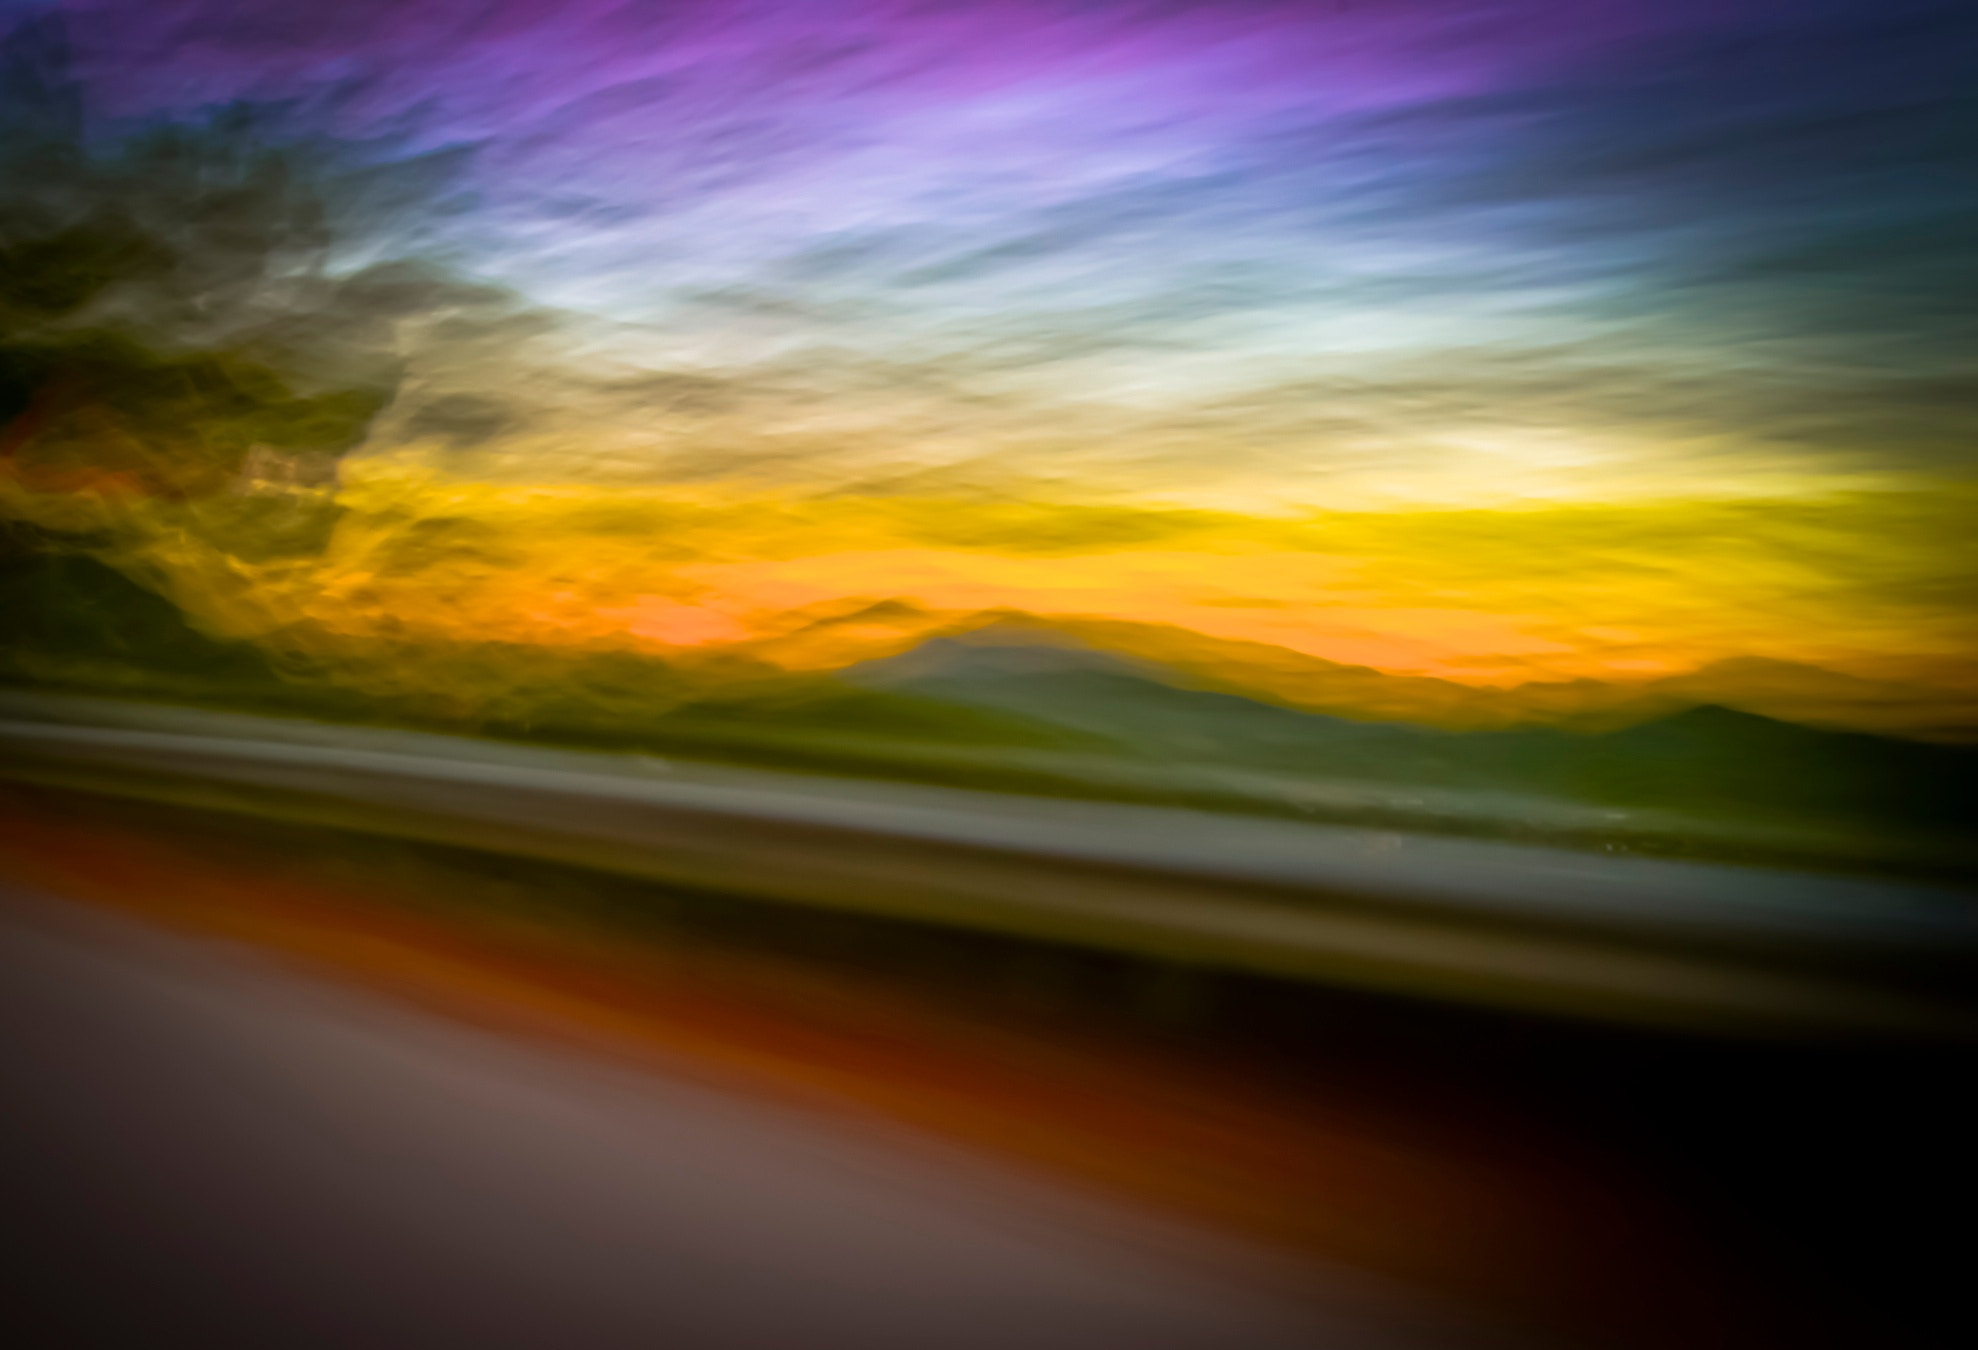 Photograph Sunset blur by Rosario Manzo on 500px